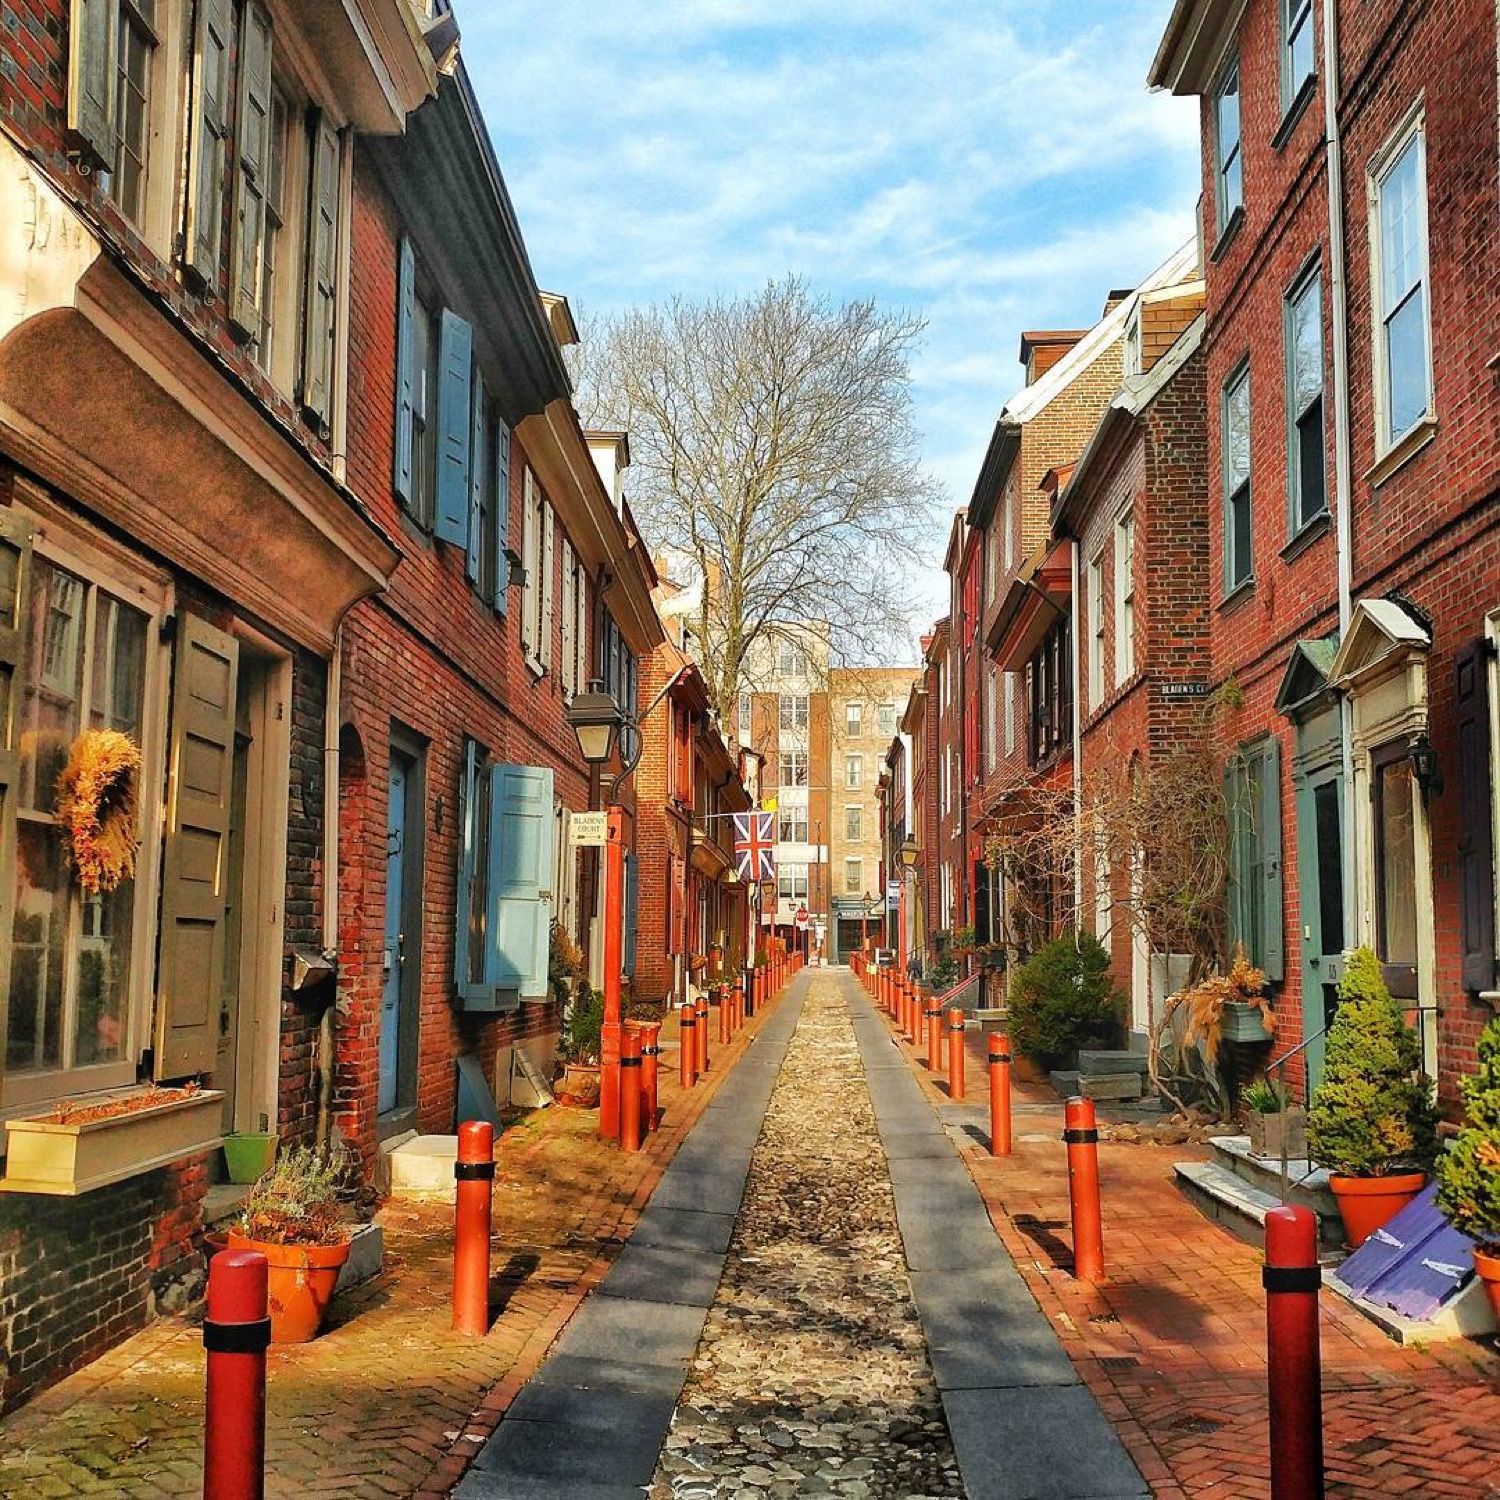 PLACE: Old City, Philadelphia / MILES FROM CINCY: 568 / ABOUT: Three beautiful neighborhoods make up Philadelphia's eastern riverfront: Old City, Society Hill, and Queen Village. If you haven't visited them, do it. They make Philadelphia one of the coolest cities in the country. / Image courtesy of Instagram user @michael_sladden // Published: 5.14.17